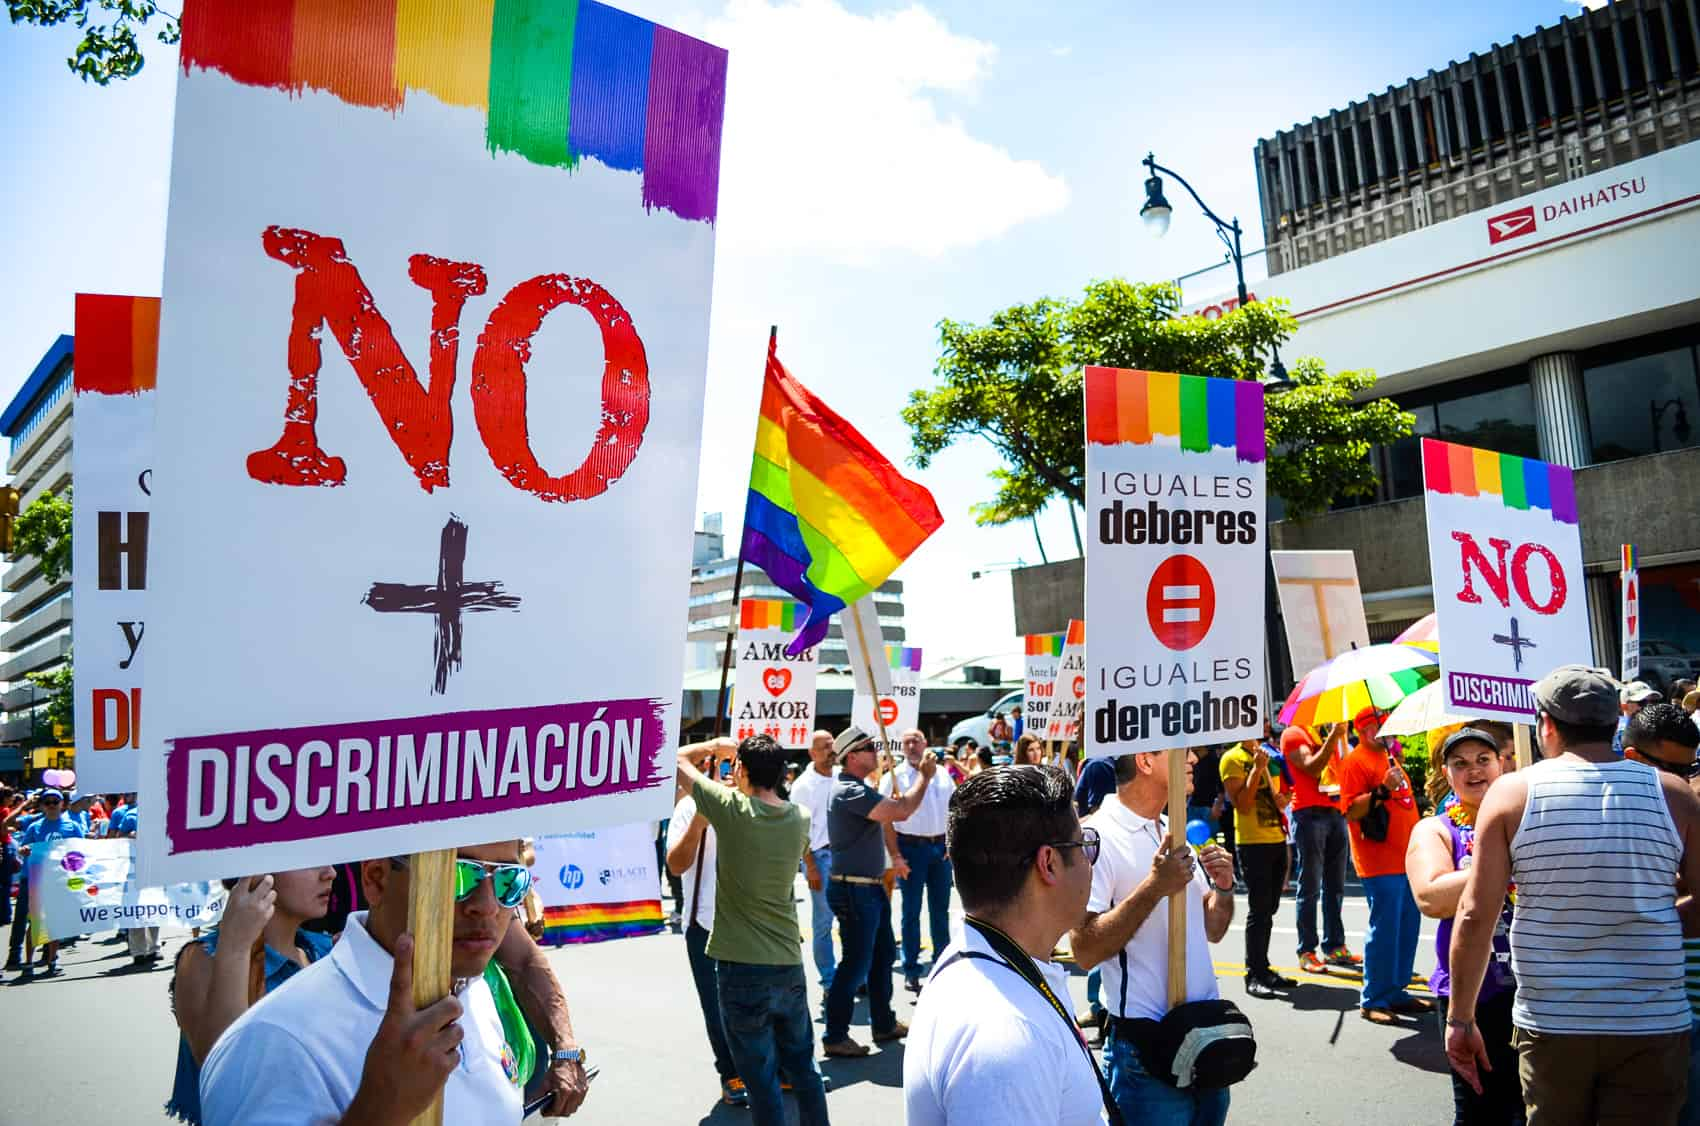 Gay rights demonstrations